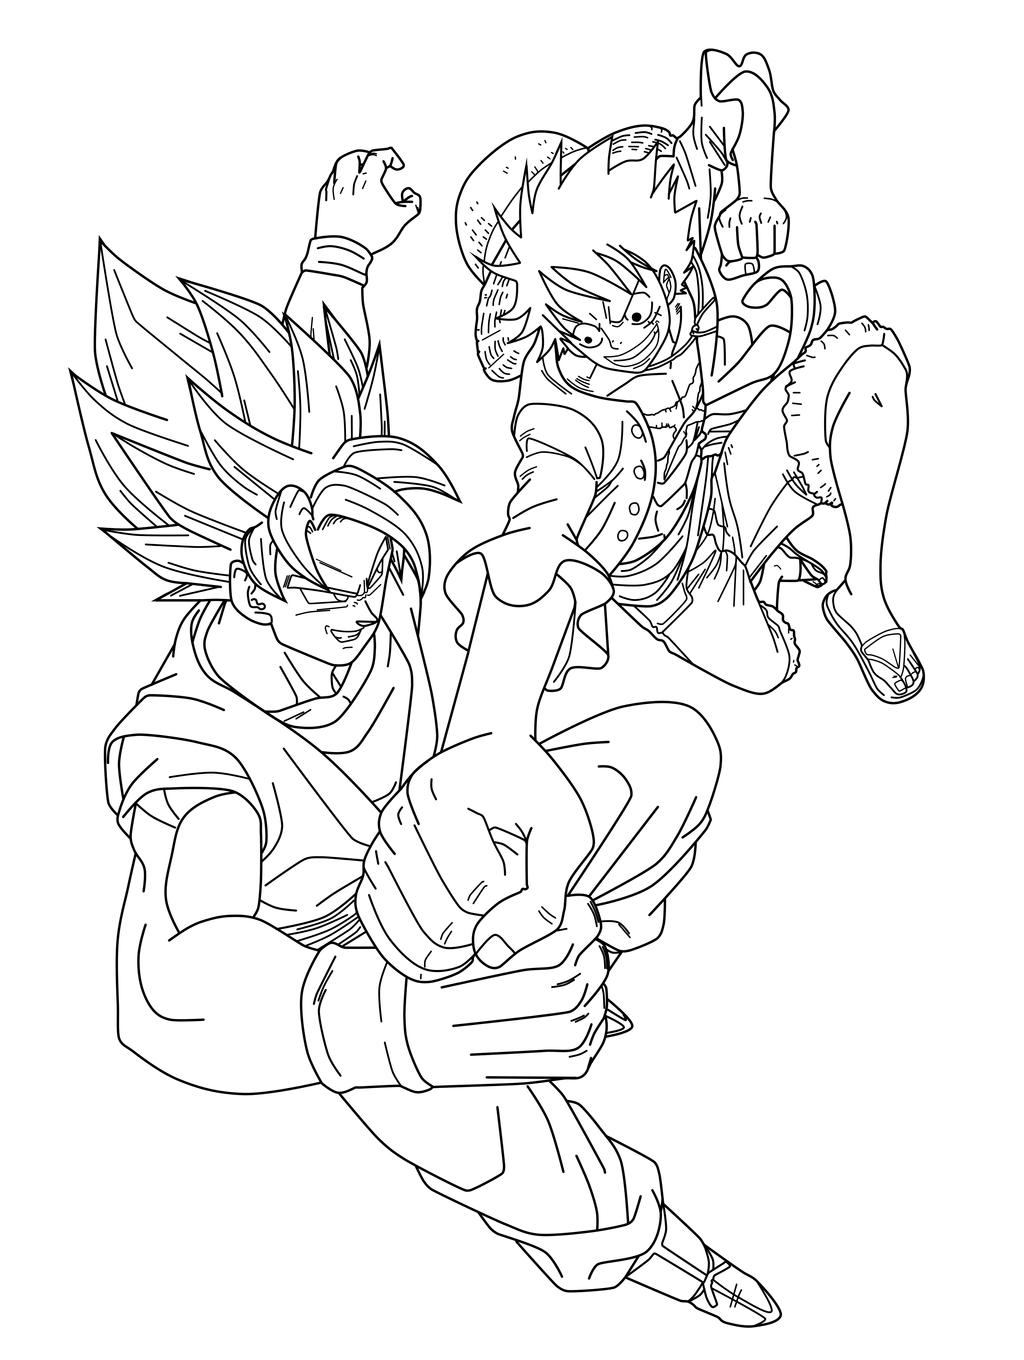 Luffy Lineart : Goku vs luffy lineart by saodvd on deviantart